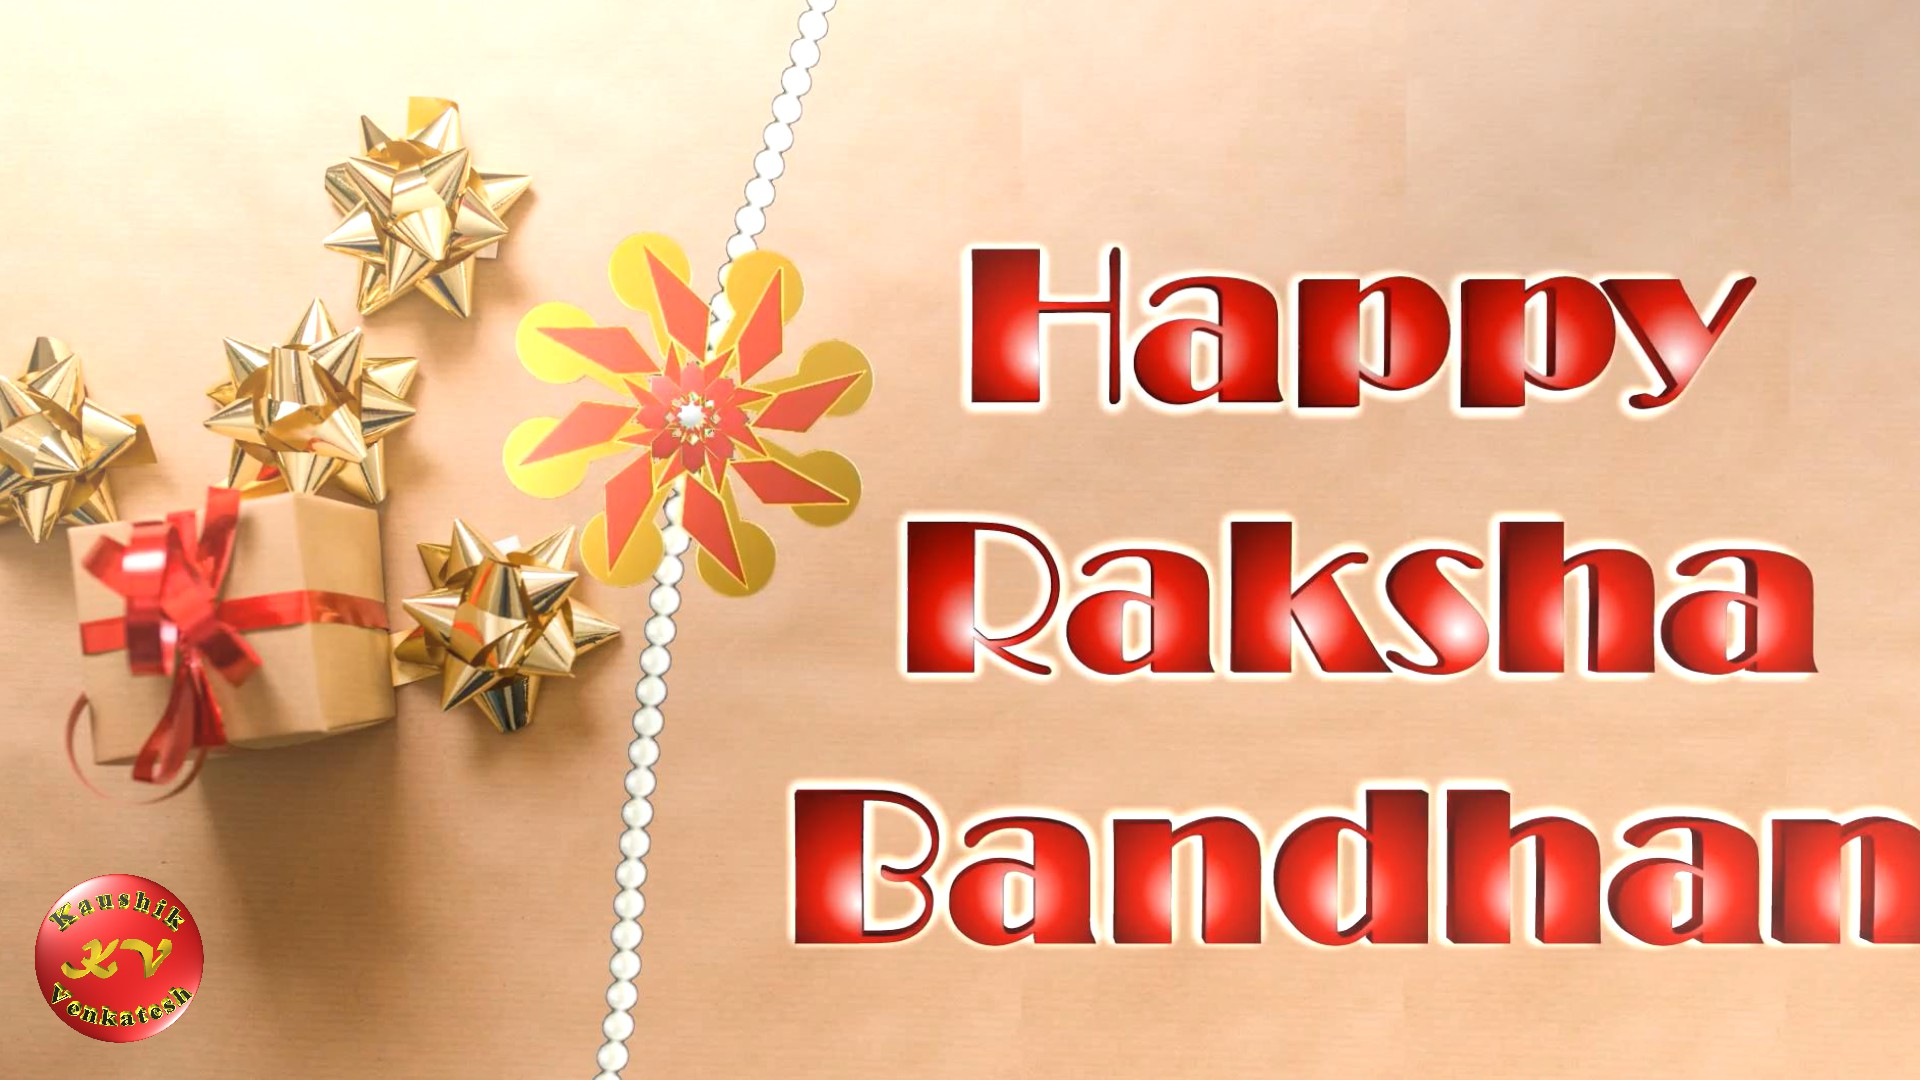 Raksha Bandhan Greetings